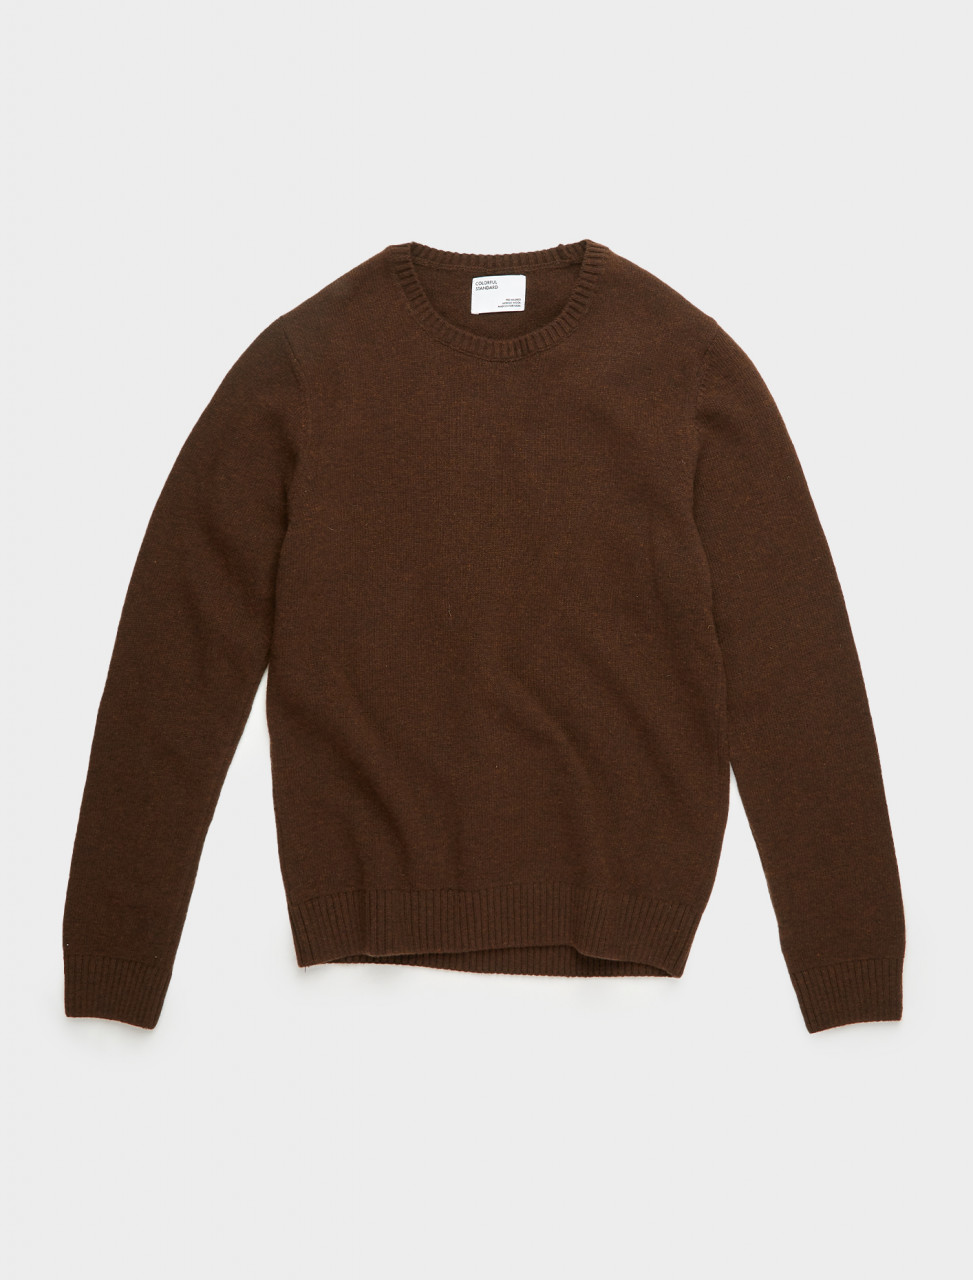 307-CS5083-CB COLORFUL STANDARD MERINO WOOL CREW COFFEE BROWN